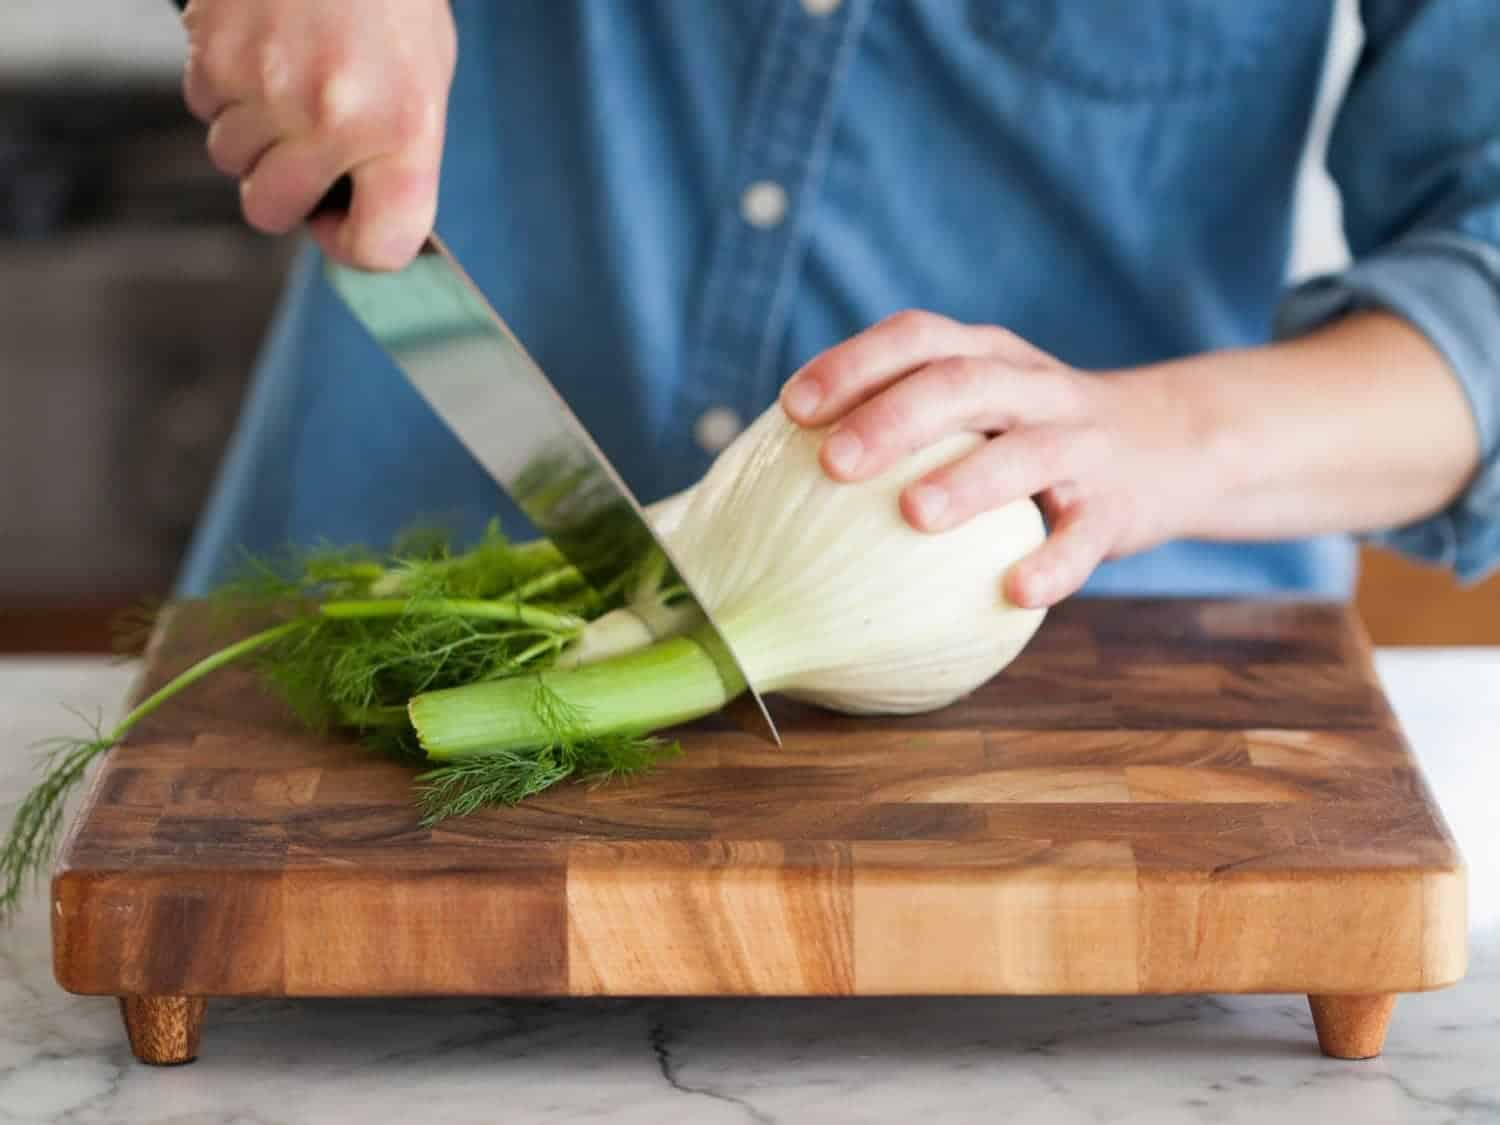 How to Use a Chef Knife